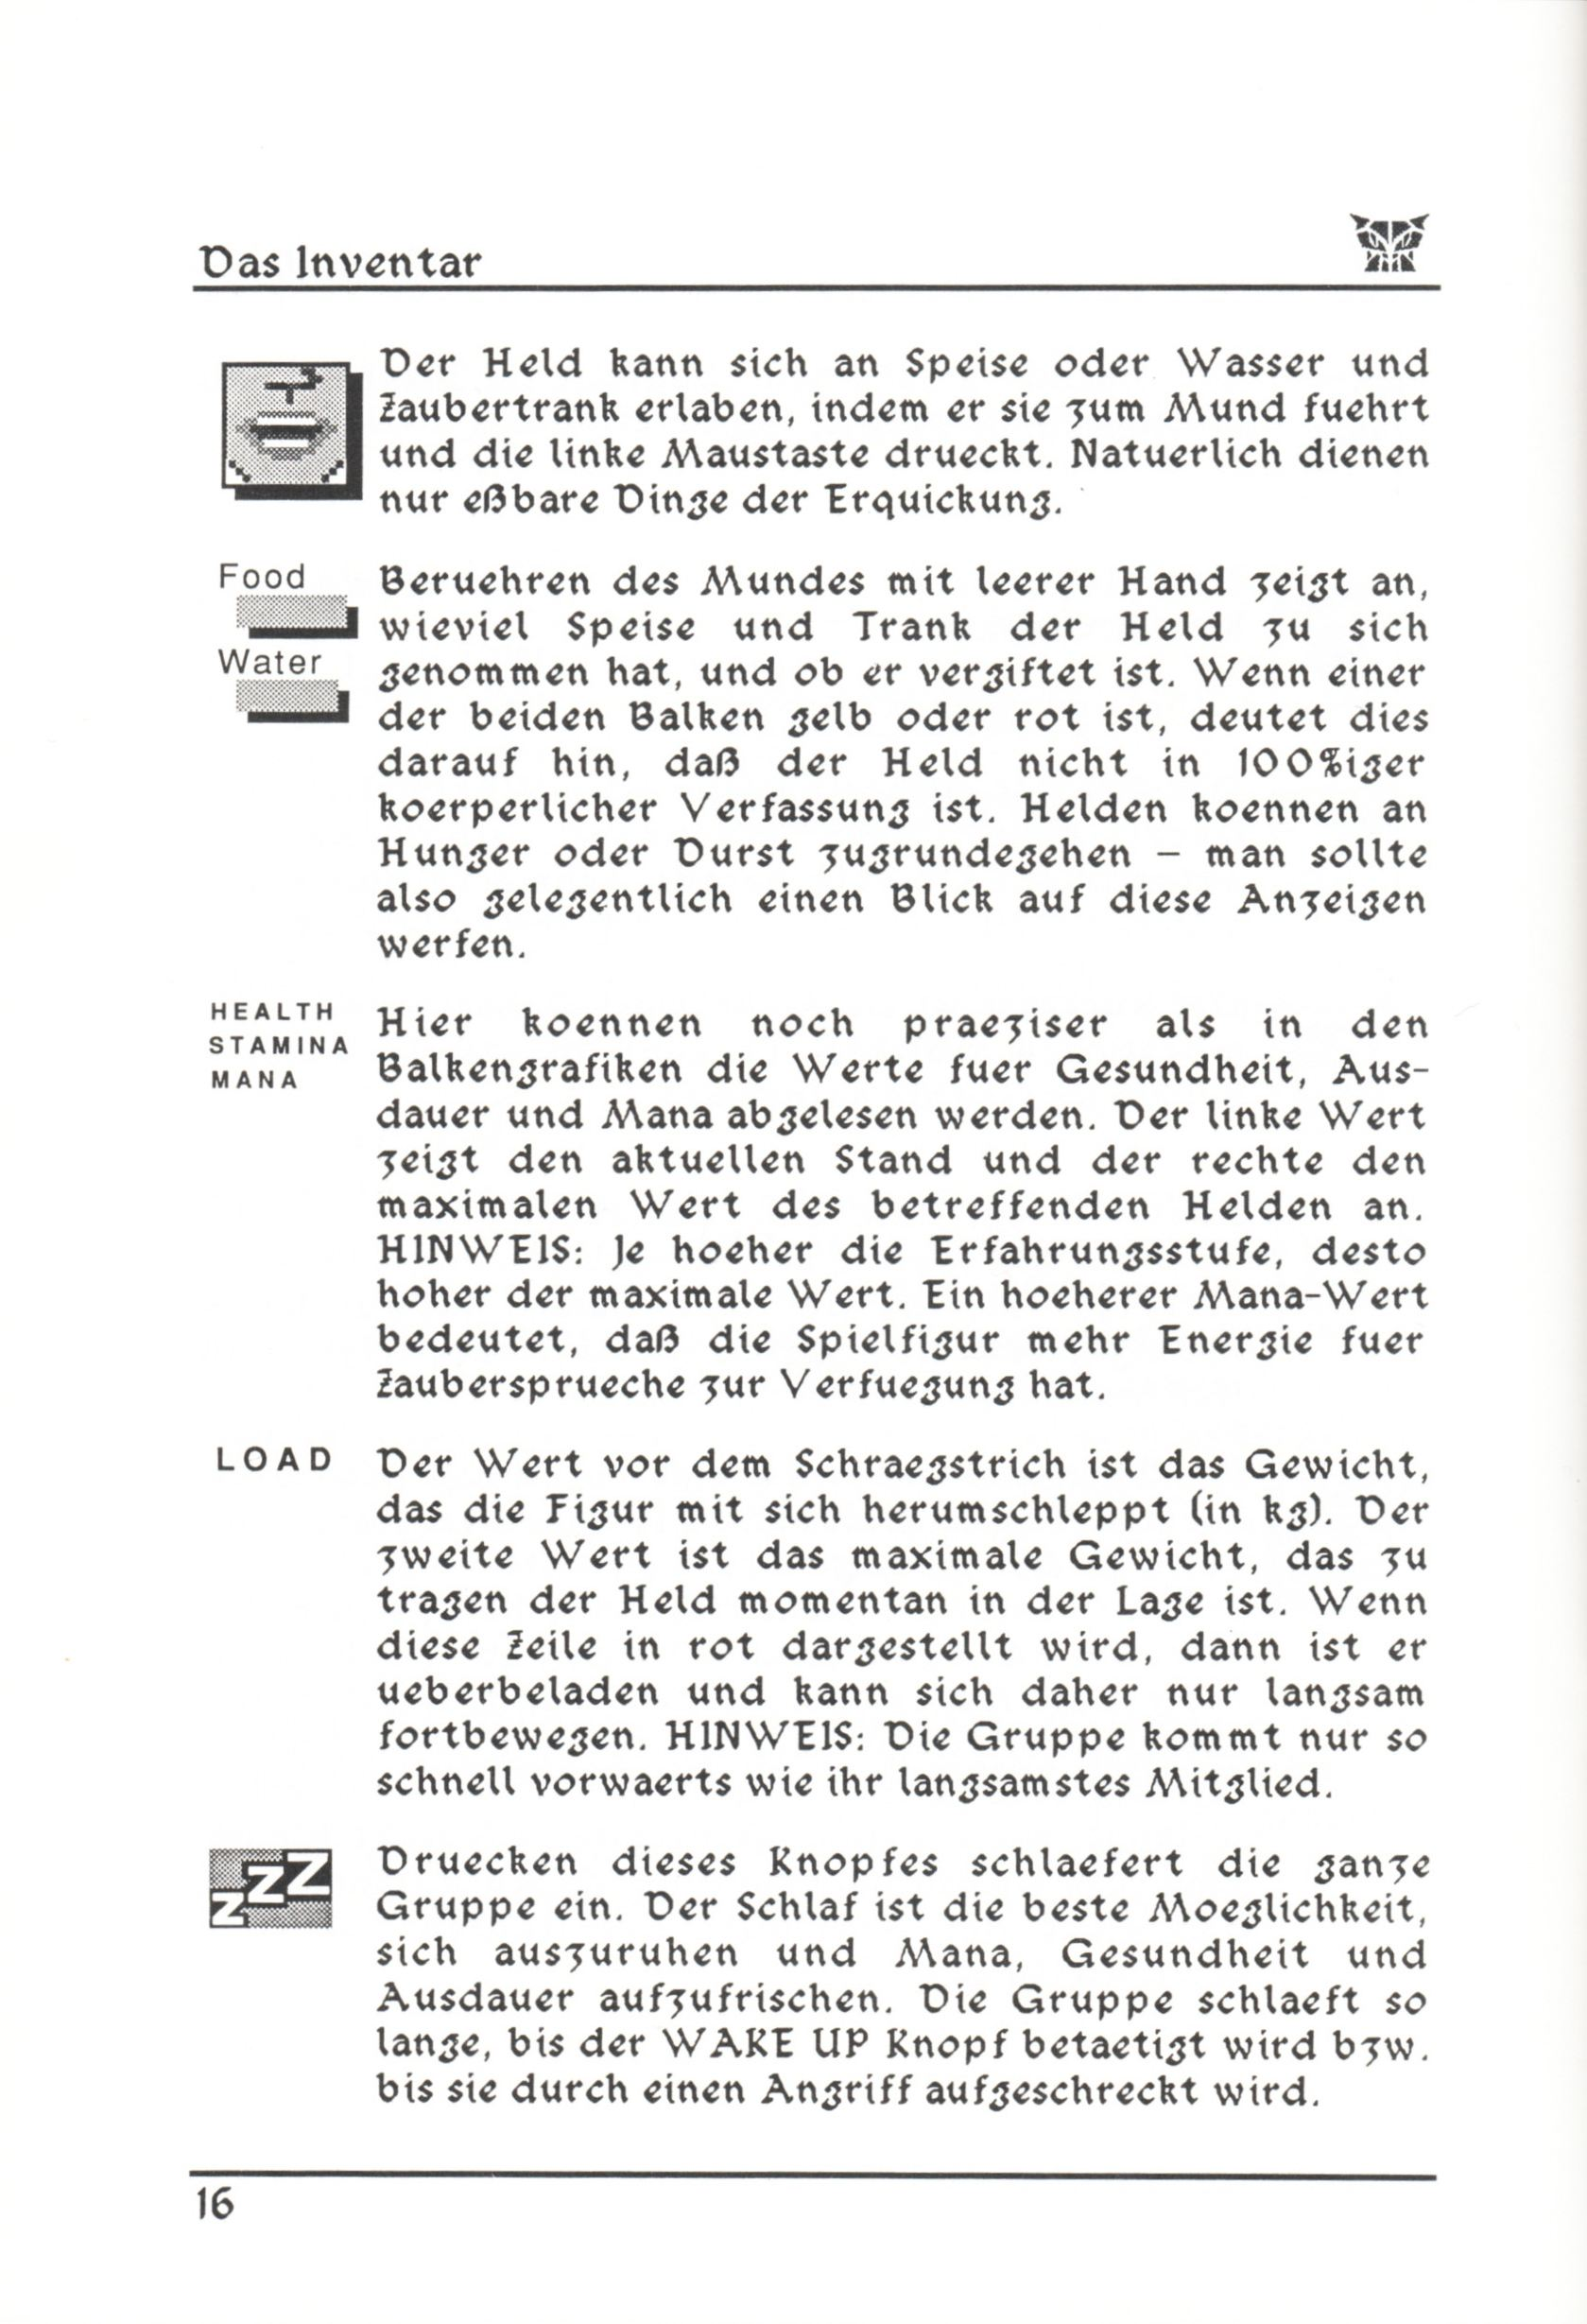 Game - Dungeon Master - DE - PC - Psygnosis - Manual - Page 042 - Scan